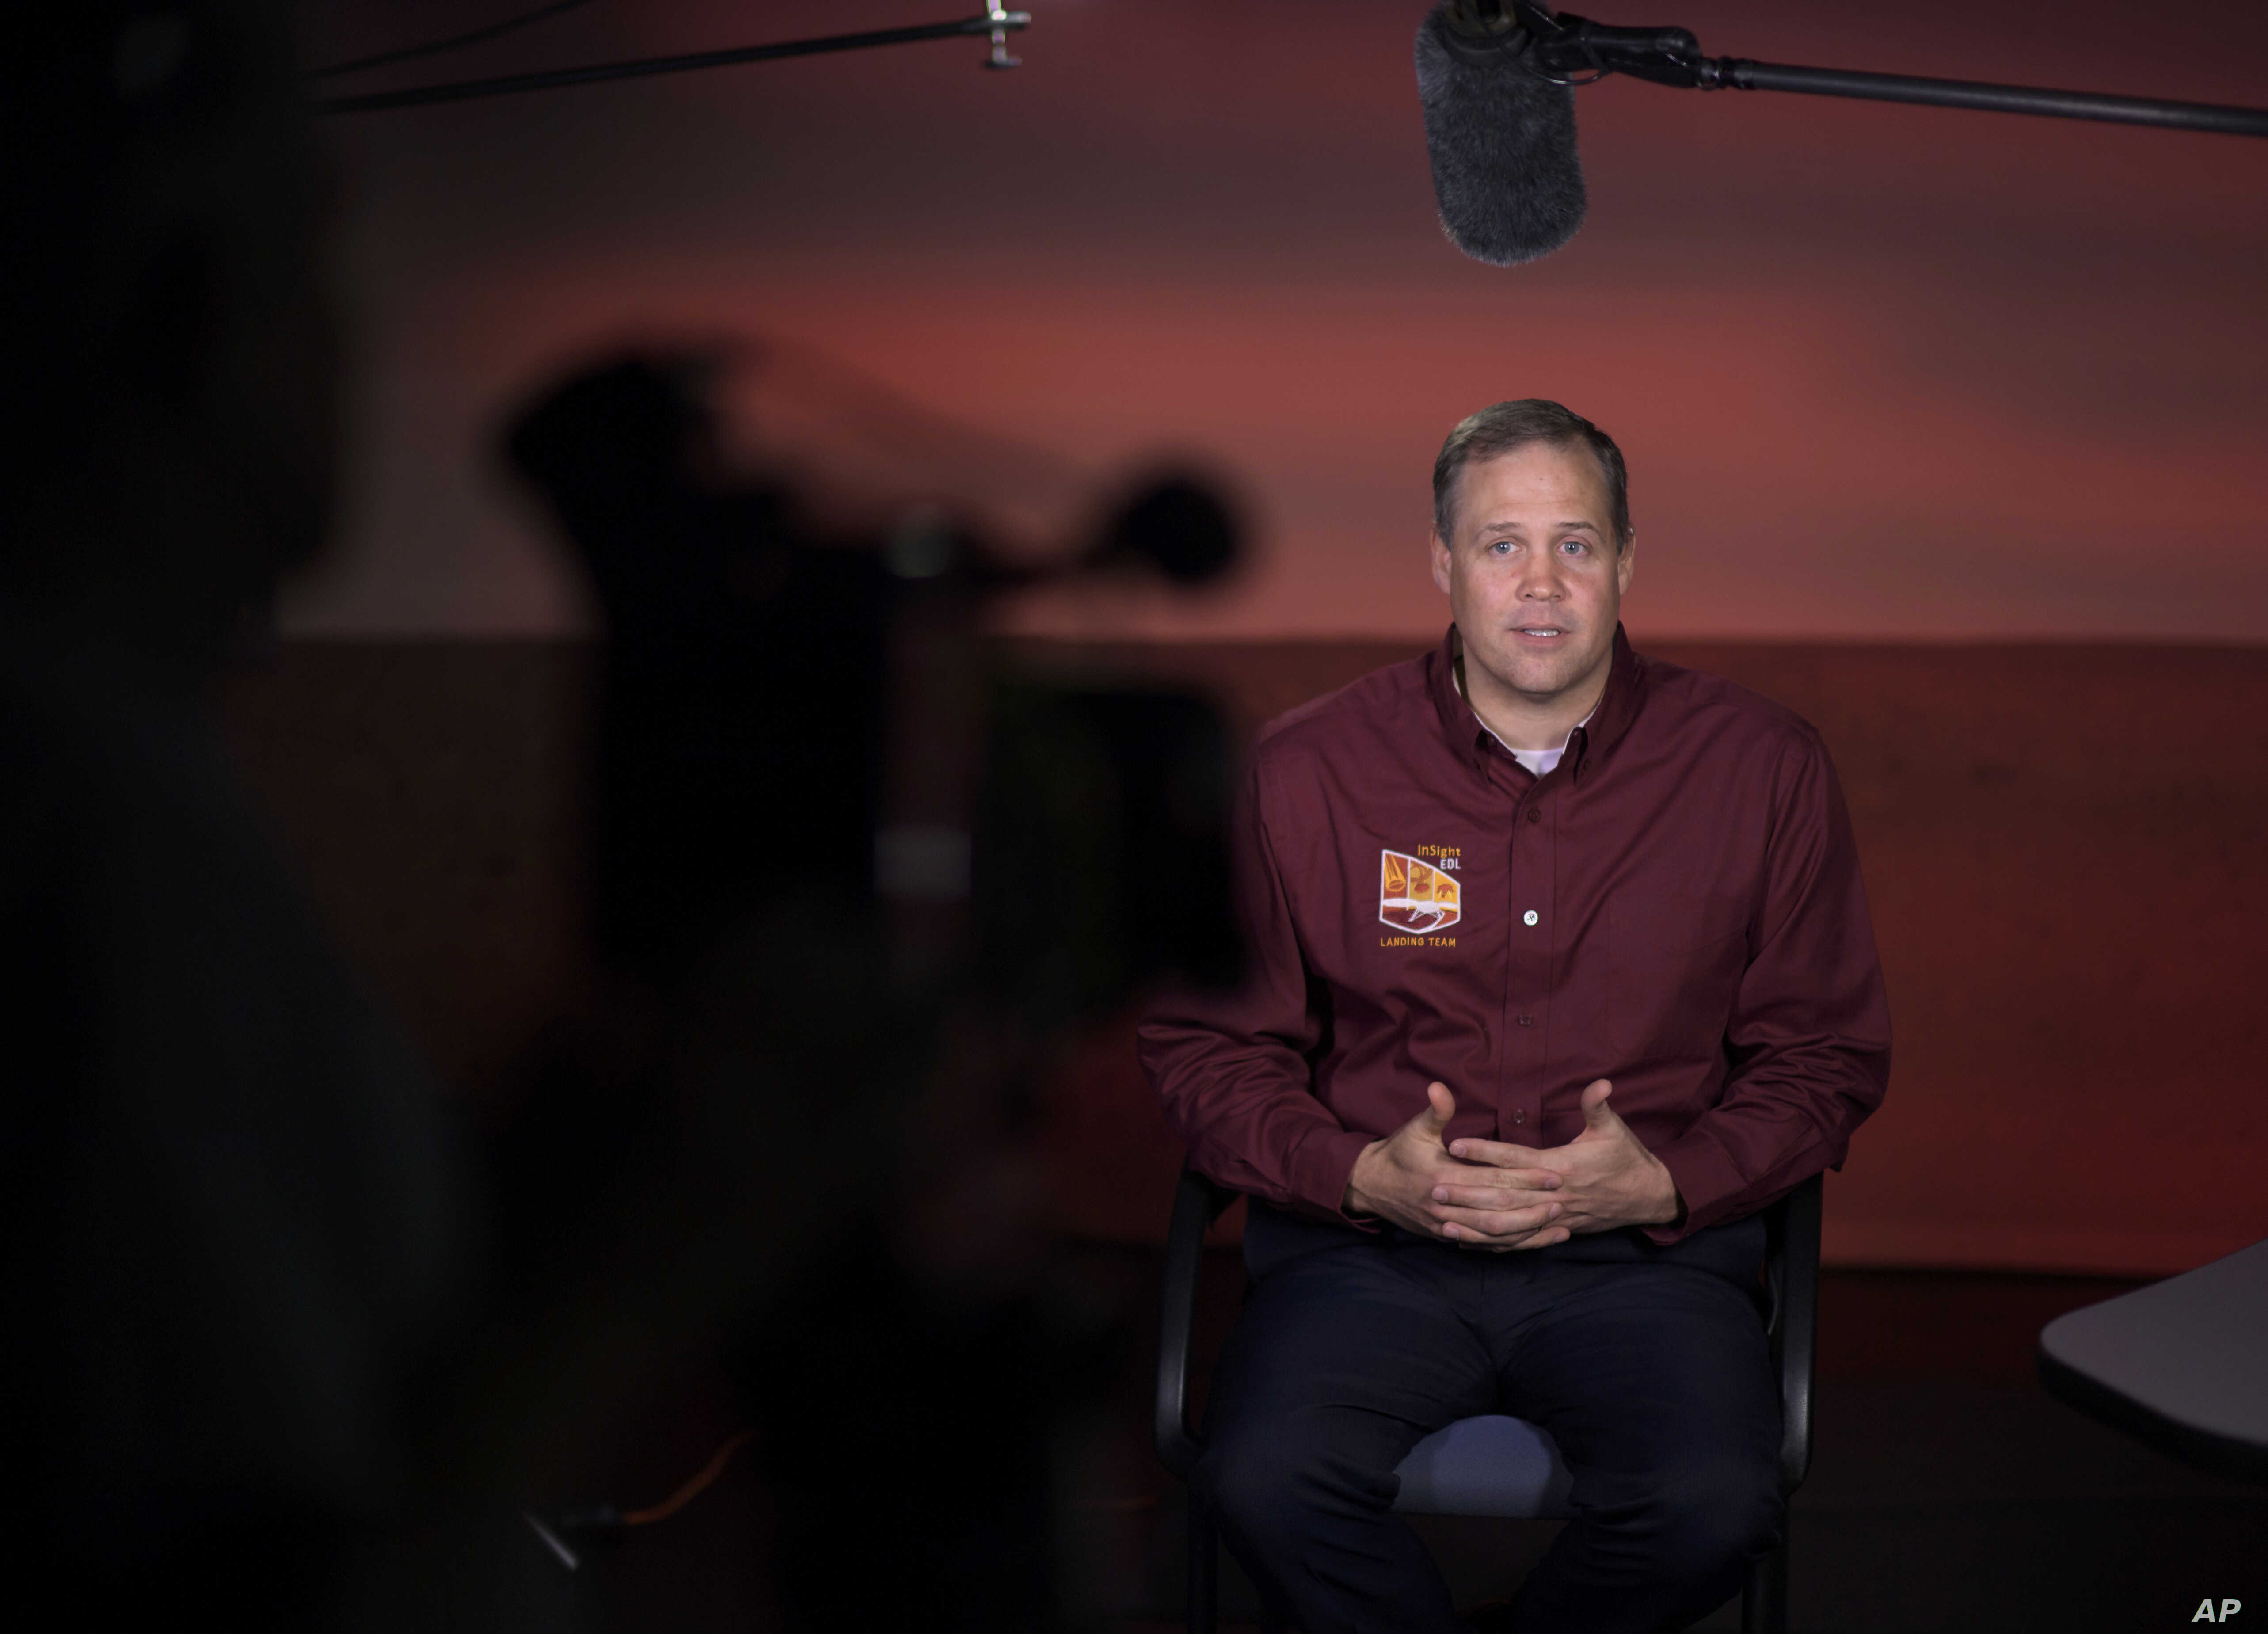 NASA Administrator Jim Bridenstine talks to multiple media outlets about Mars InSight, Monday, Nov. 26, 2018, at NASA's Jet Propulsion Laboratory in Pasadena, California.